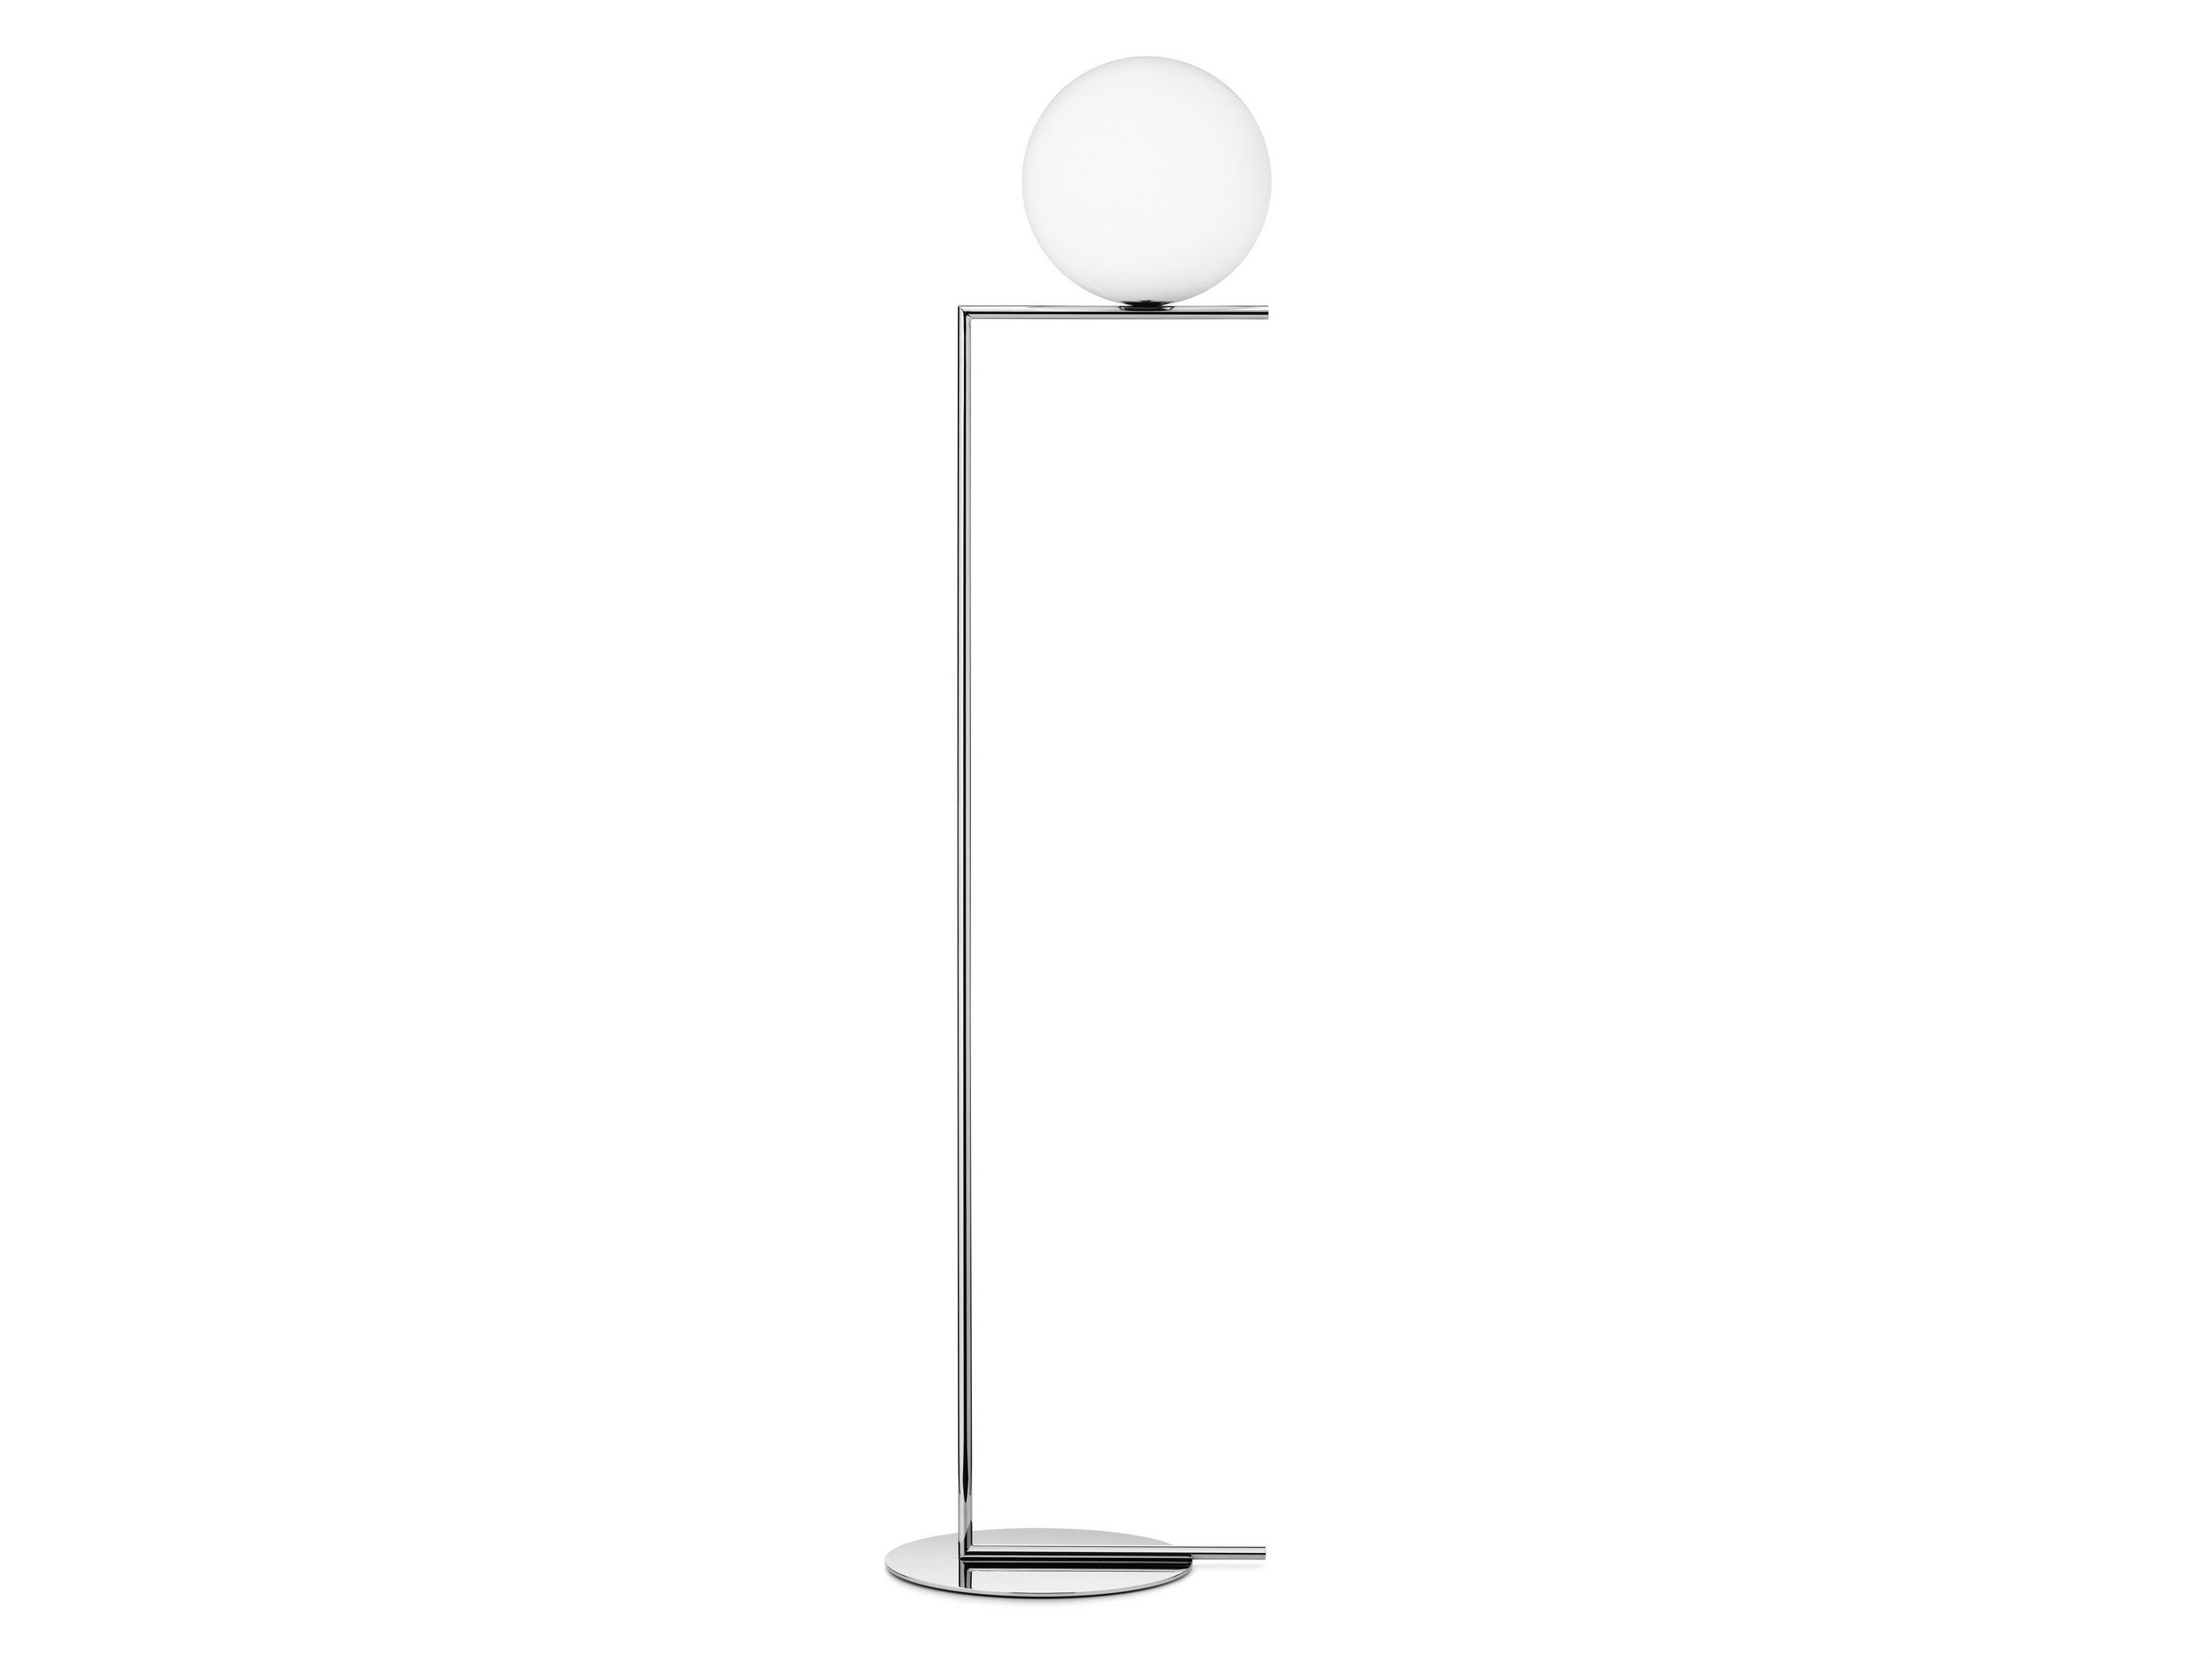 Lampada da terra in ottone ic lights f2 by flos design for Lampada flos da terra